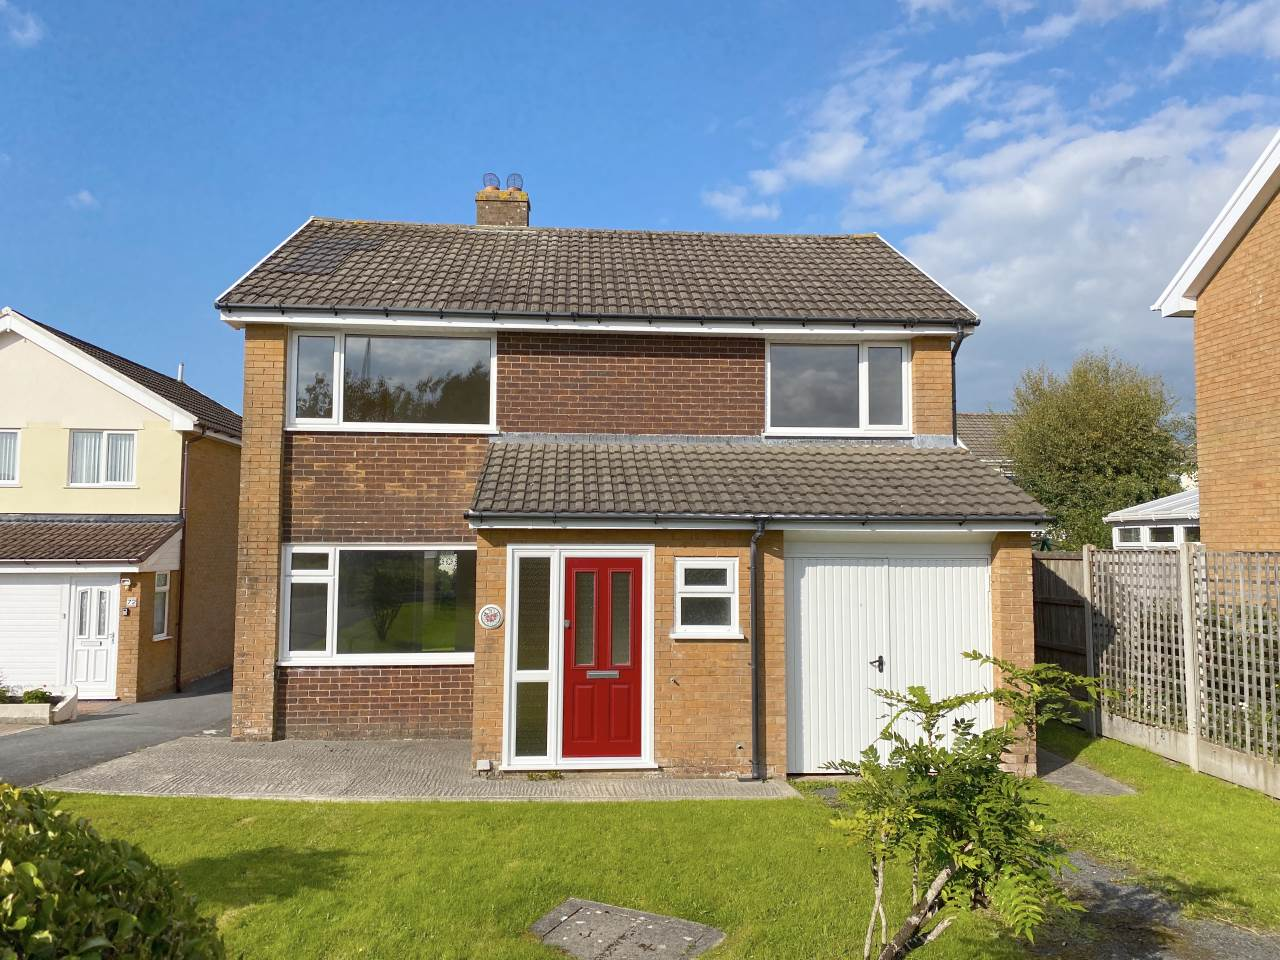 4 bed detached house for sale in Maesceinion, Waunfawr, SY23